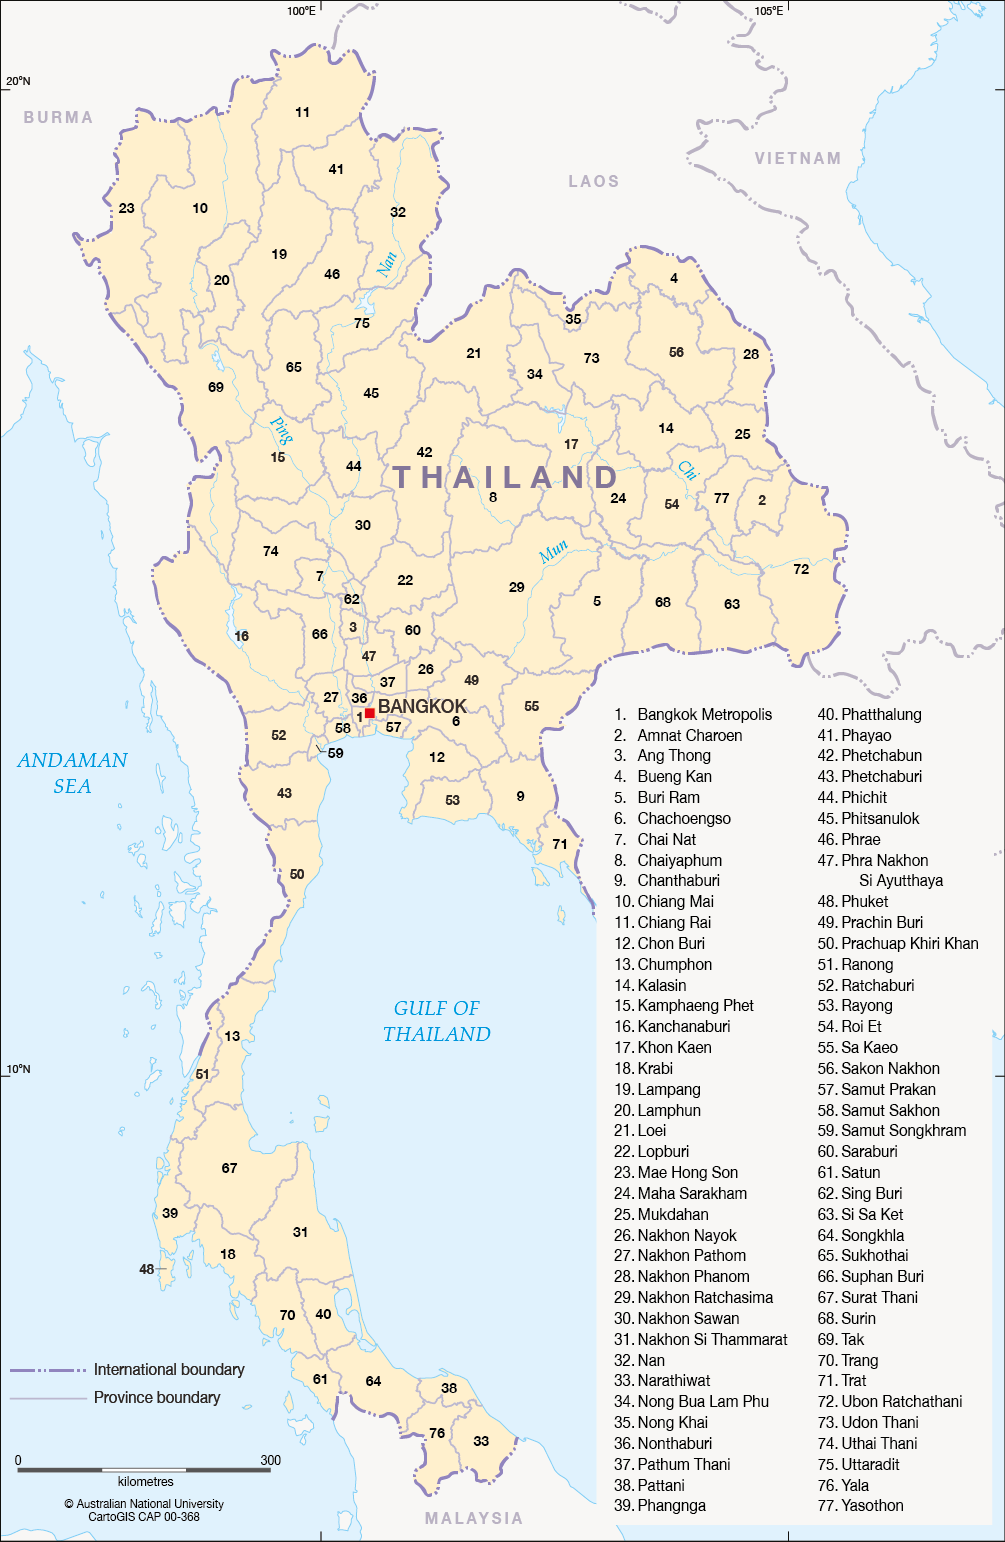 Provinces of Thailand - CartoGIS Services Maps Online - ANU on map for u.s, map for guadeloupe, map for nepal, map for somalia, map for australia, map for central african republic, map for romania, map for germany, map for palestine, map for cyprus, map for el salvador, map for taiwan, map for bangkok, map for ethiopia, map for lithuania, map for canada, map for east africa, map singapore, map for mozambique, map for korea,